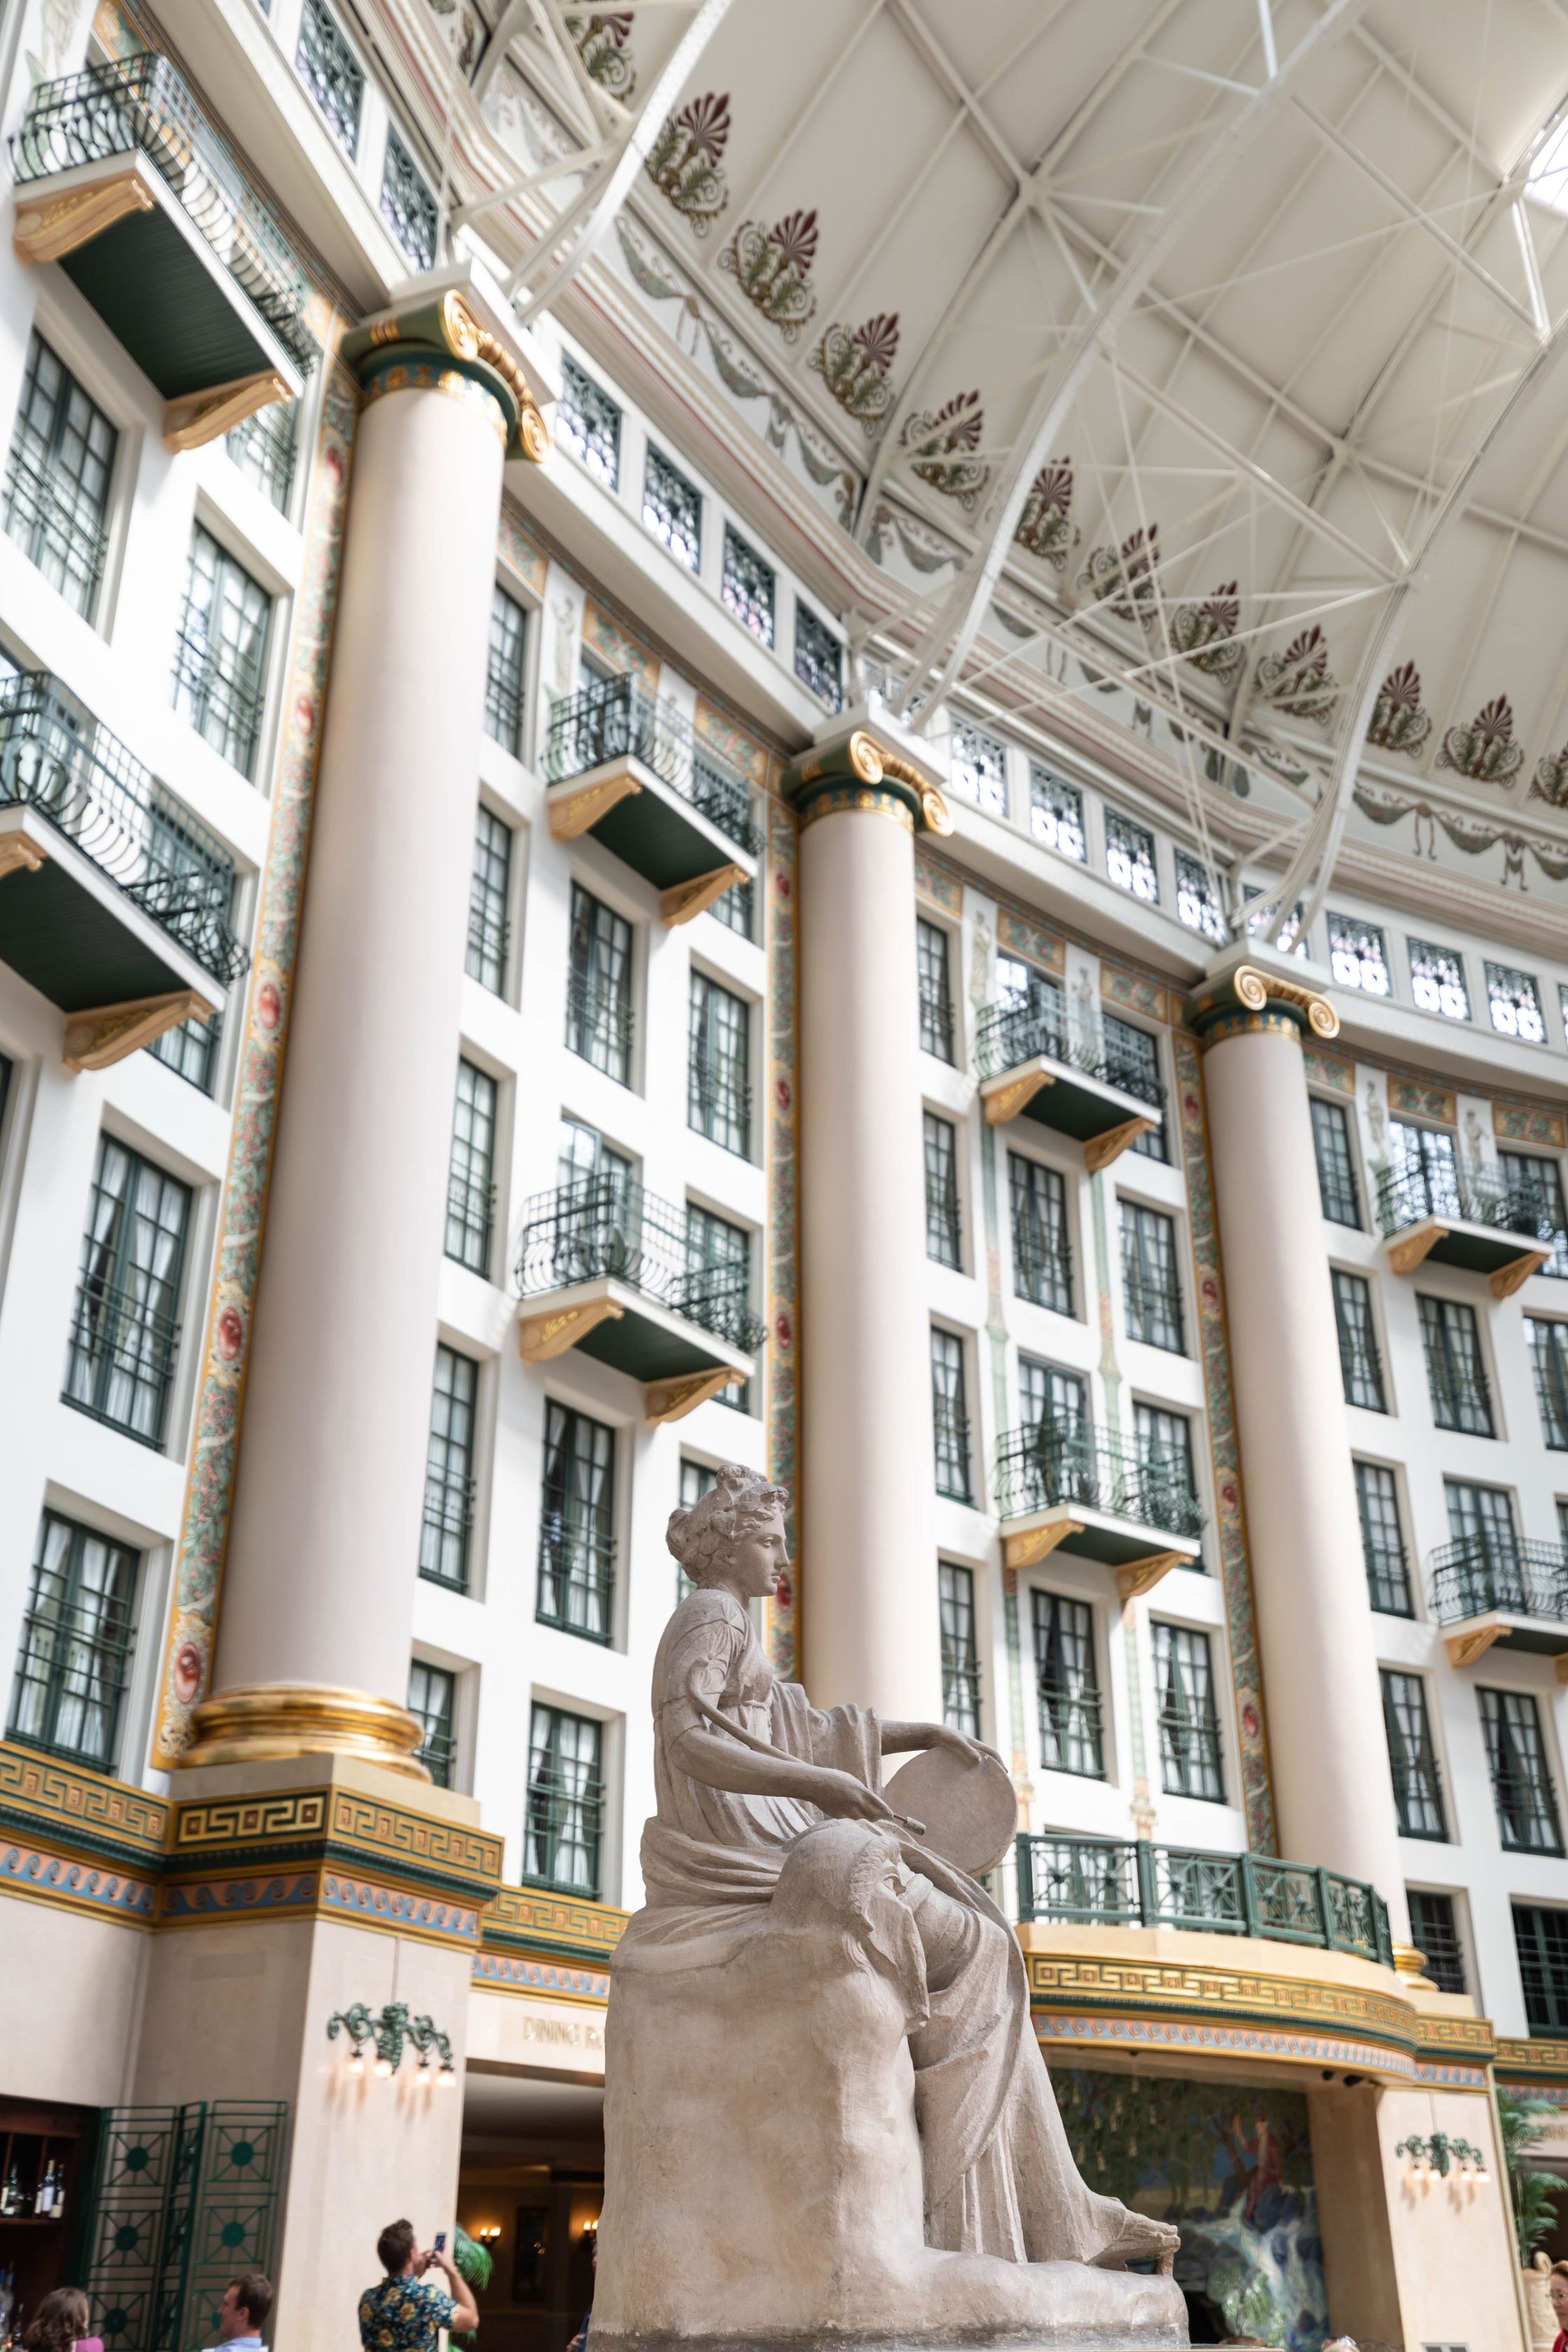 West Baden Springs Luxury Hotel in West Baden Springs, Indiana Luxury Hotels of the World North American AAA Diamond Hotel Awards